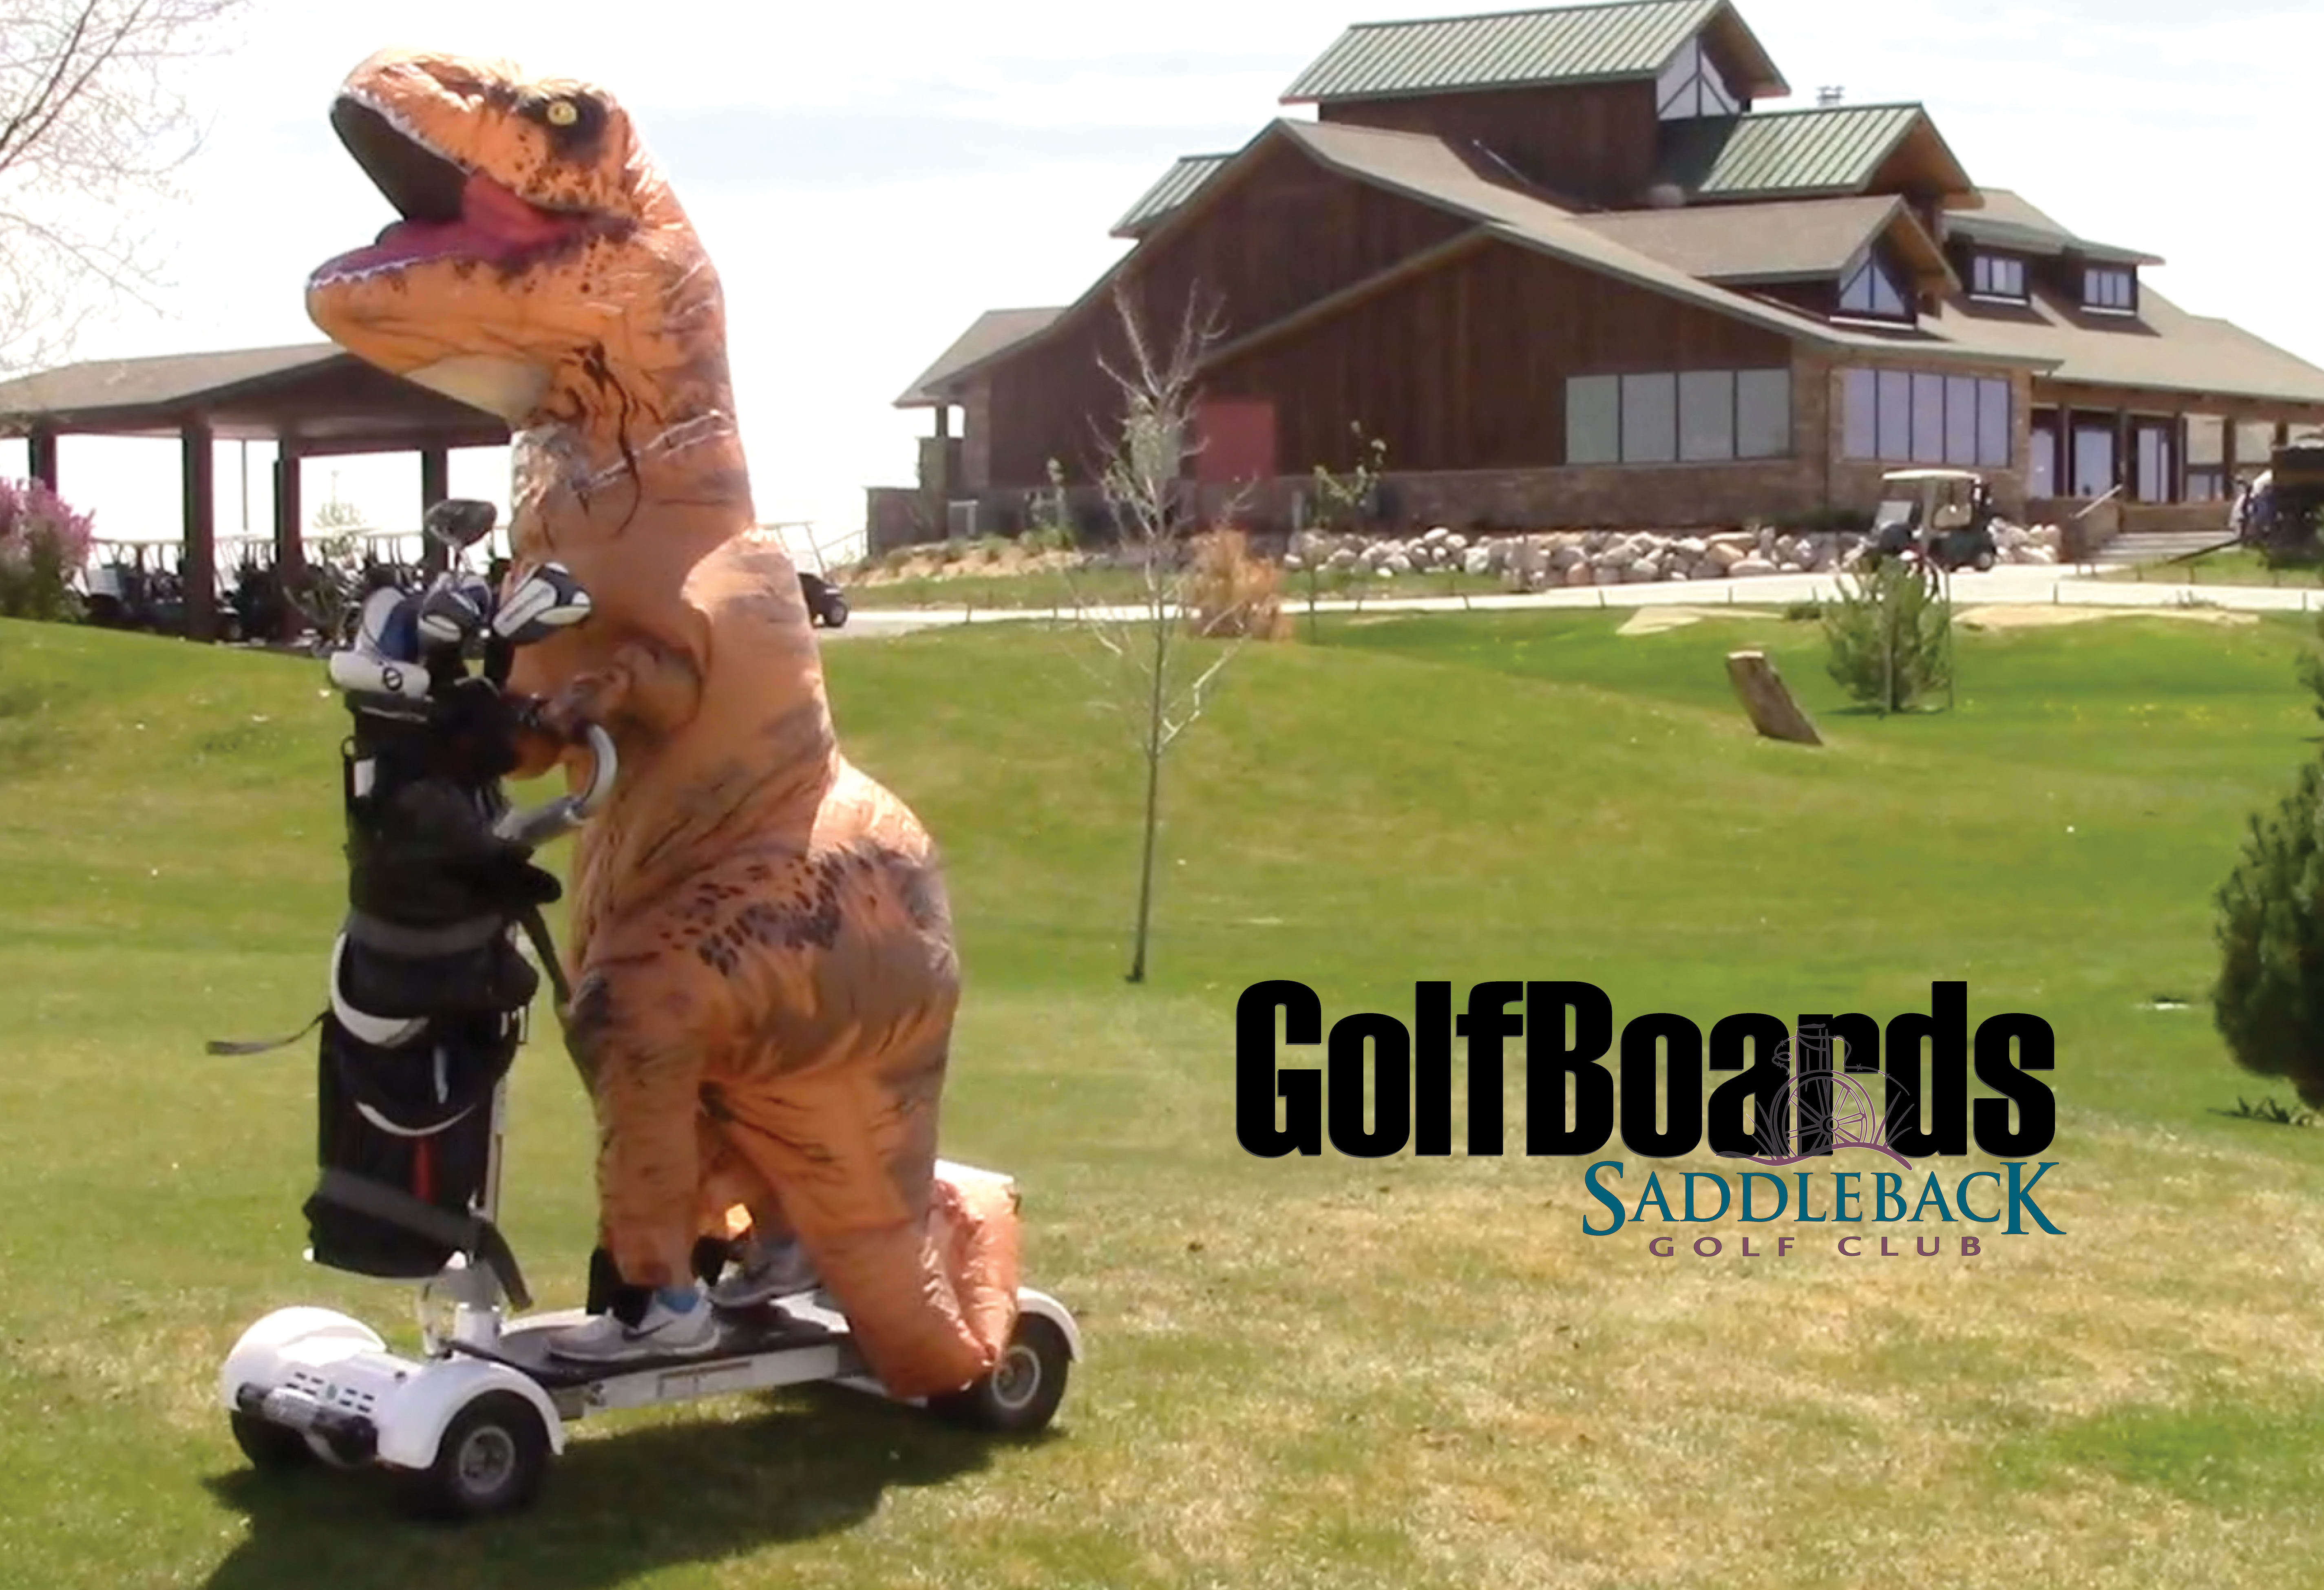 GolfBoards at Saddleback T rex